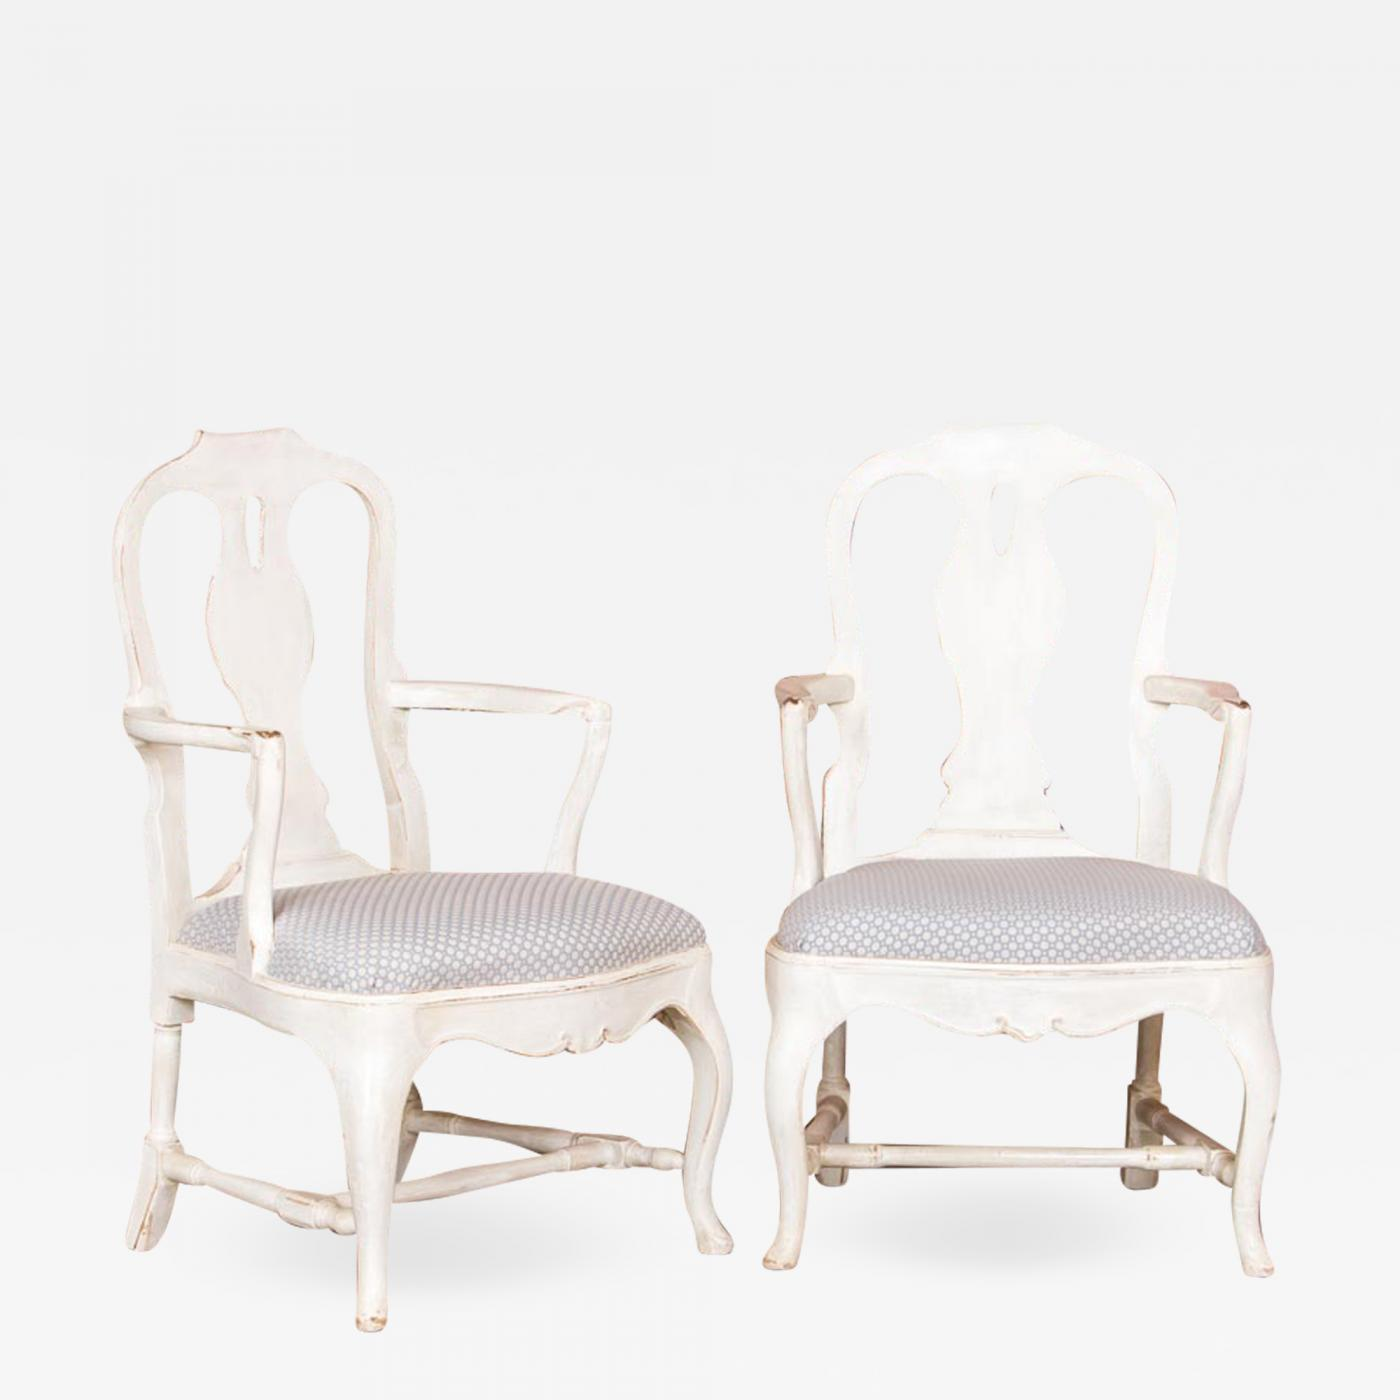 Prime Pair Of Antique White Country Rococo Armchairs From Sweden Pabps2019 Chair Design Images Pabps2019Com